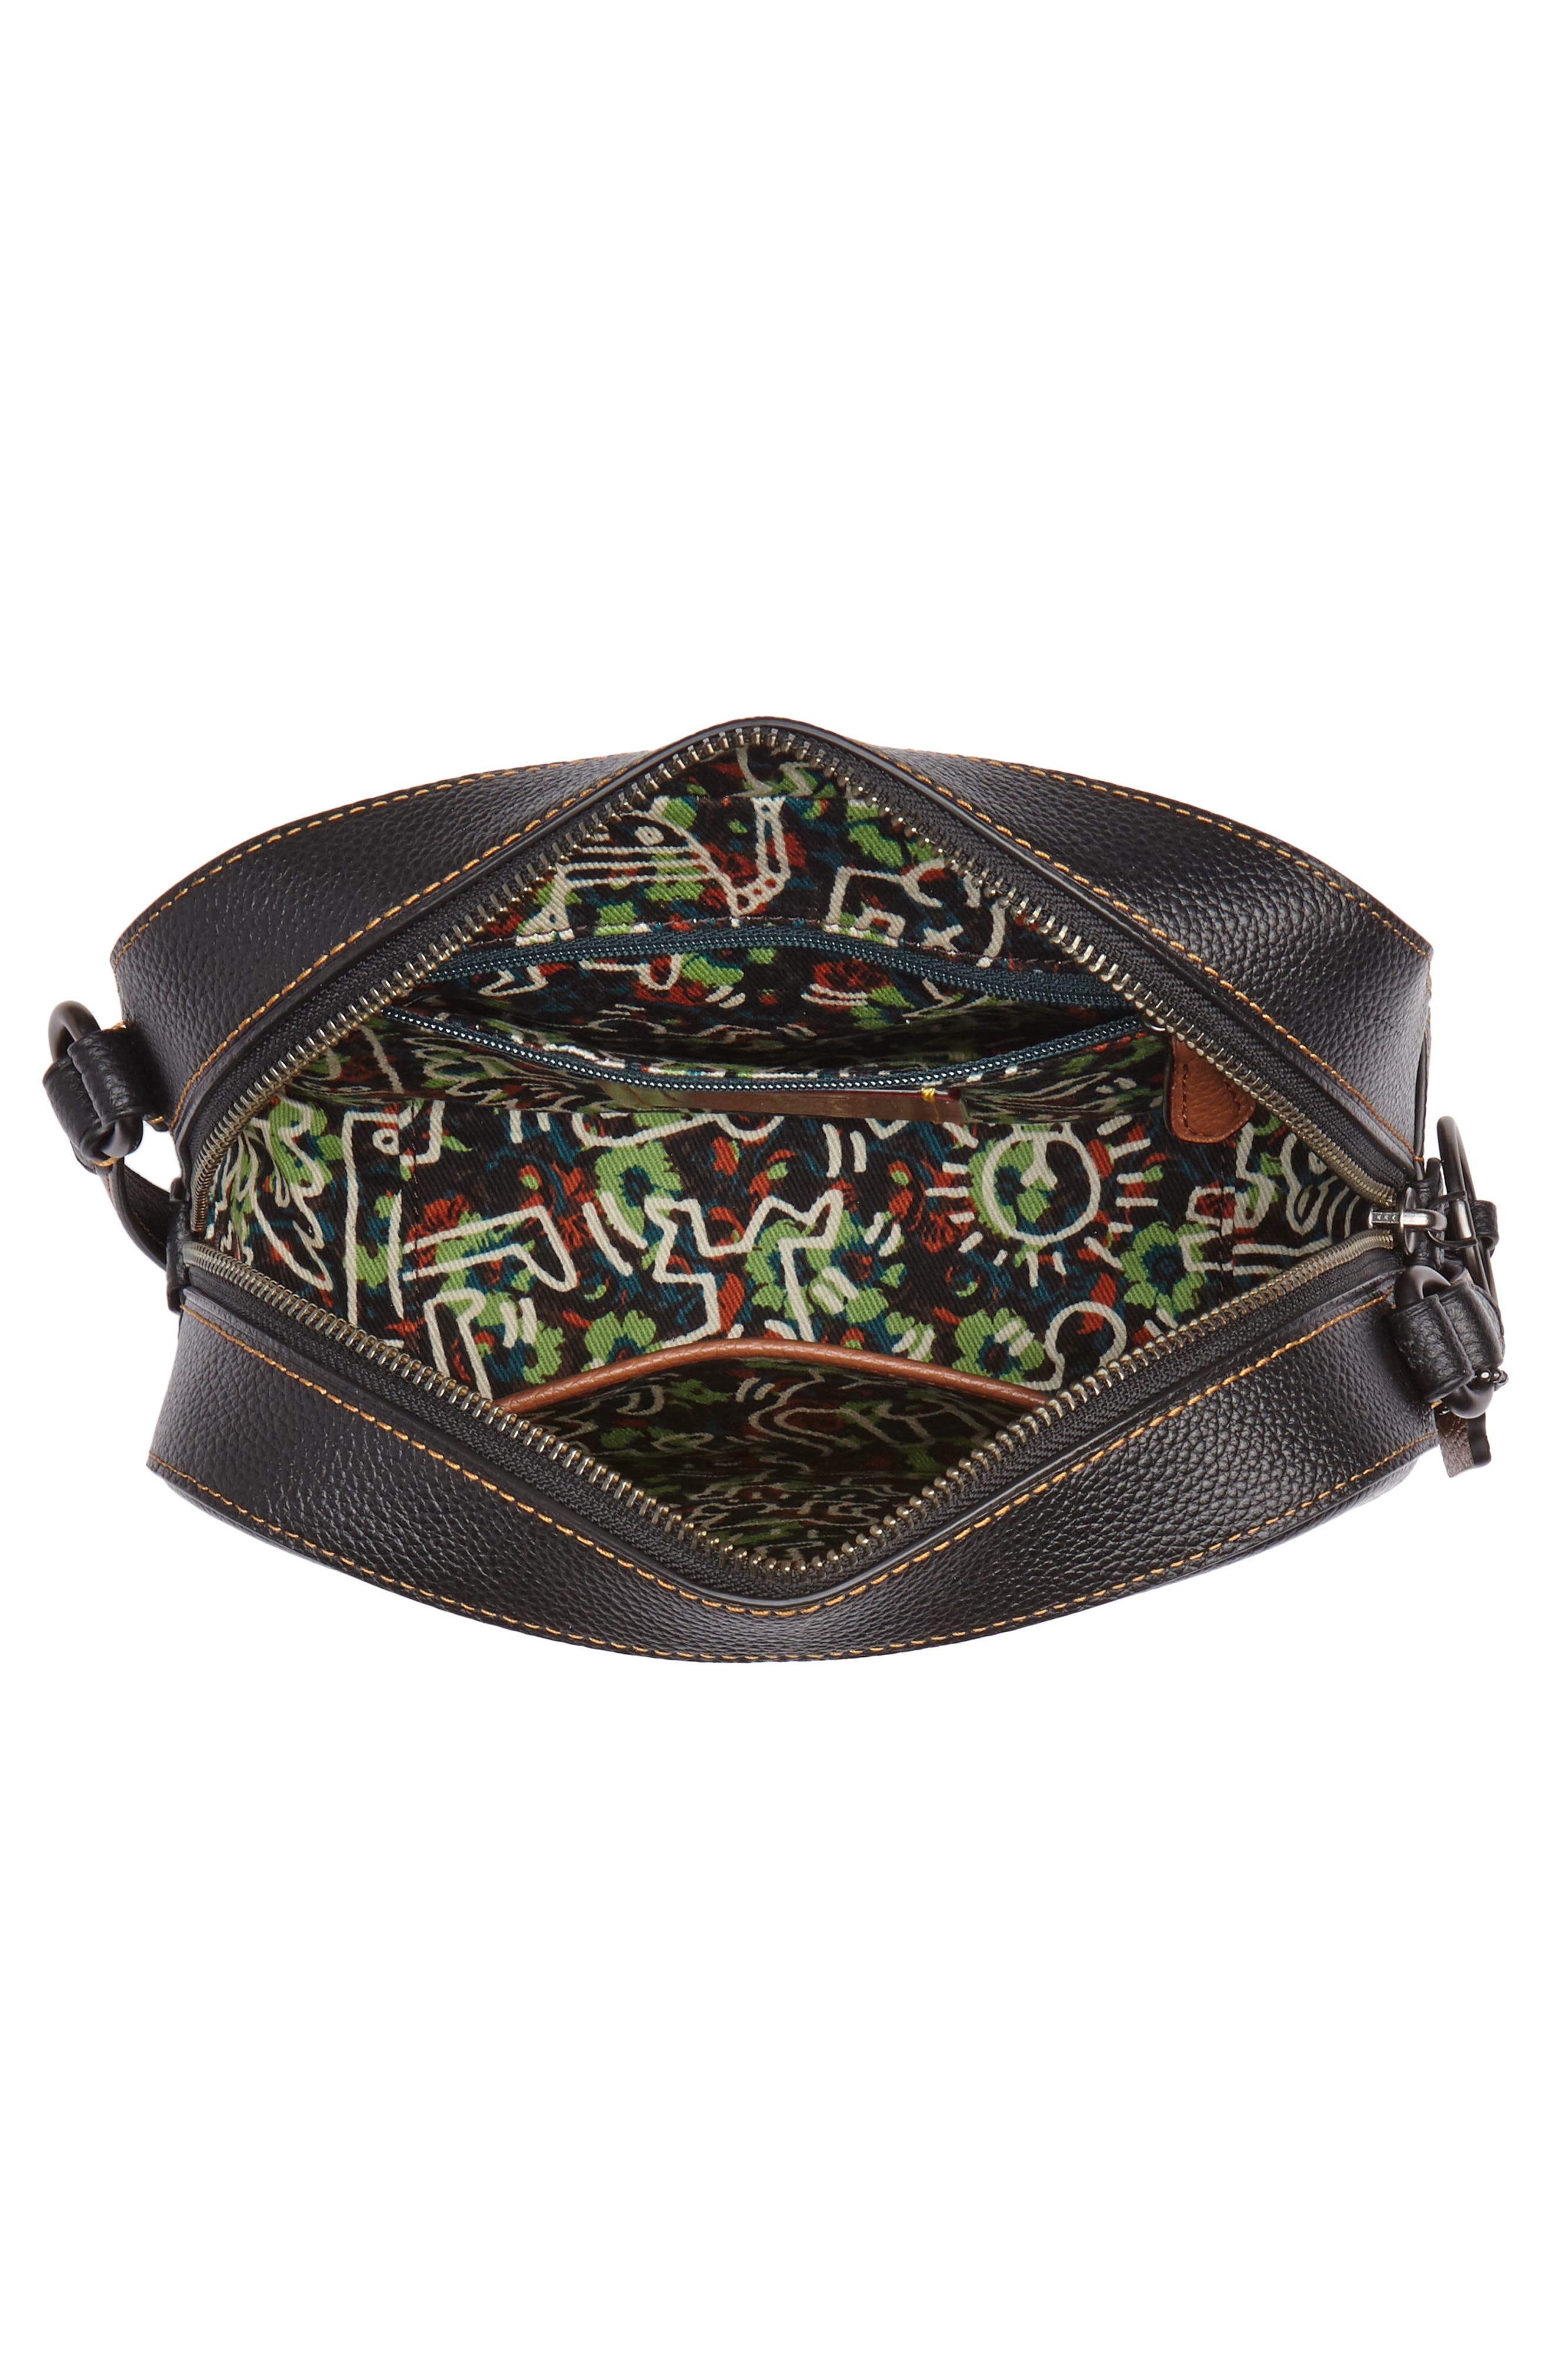 x Keith Haring Barking Crazy Dog Leather Camera Bag,                             Alternate thumbnail 4, color,                             001